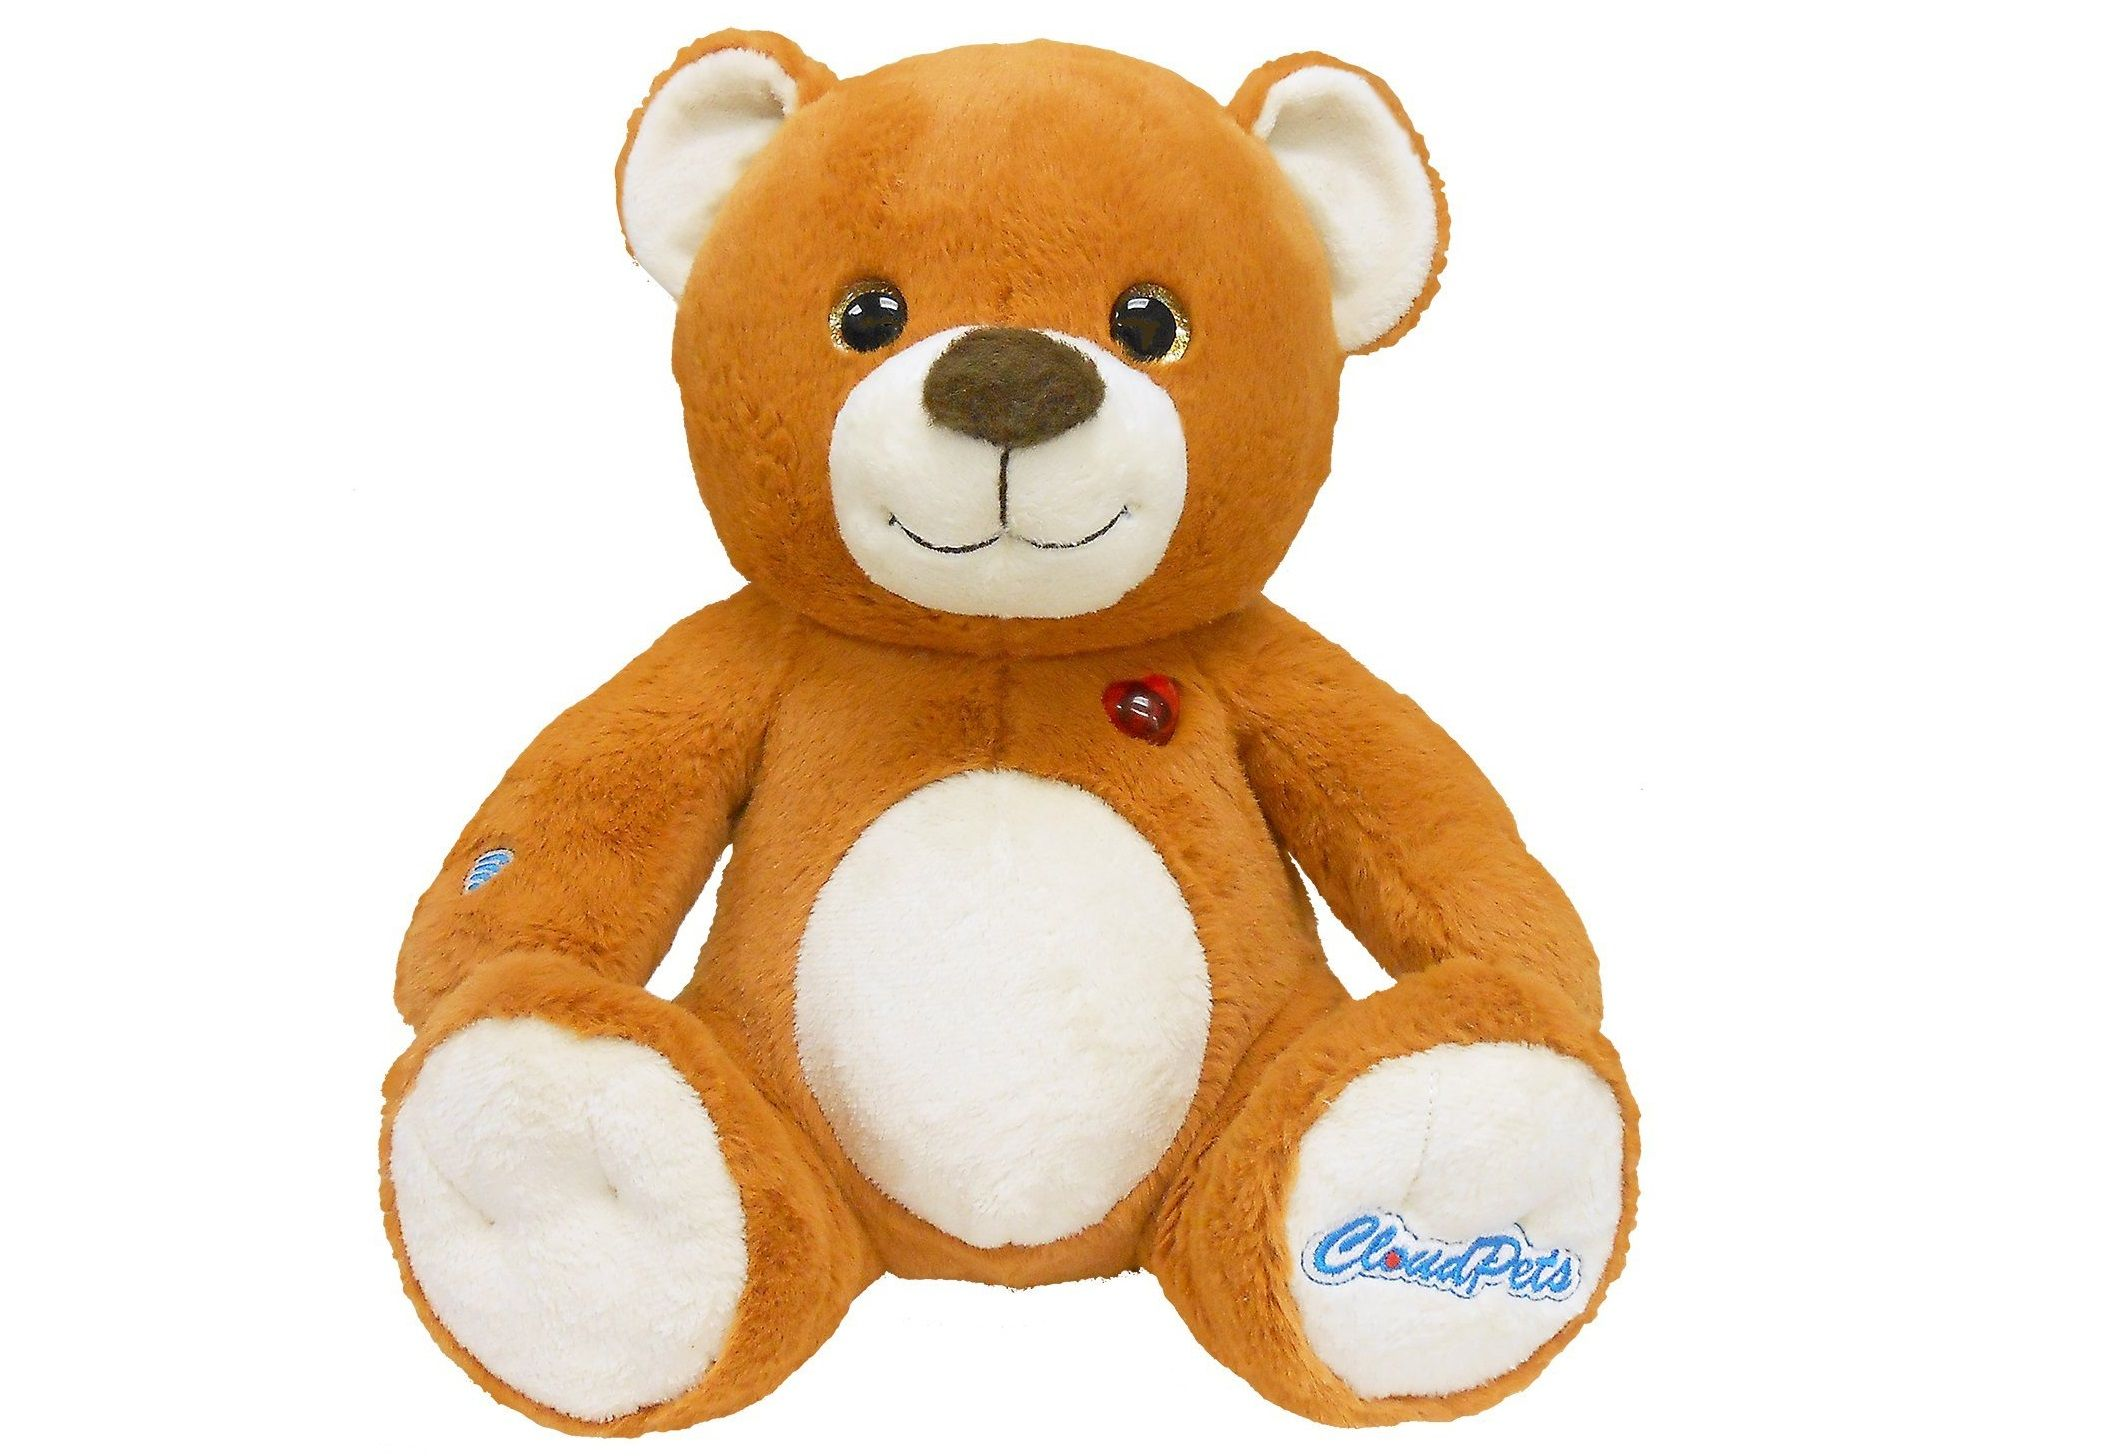 smart internet teddy bear hacked